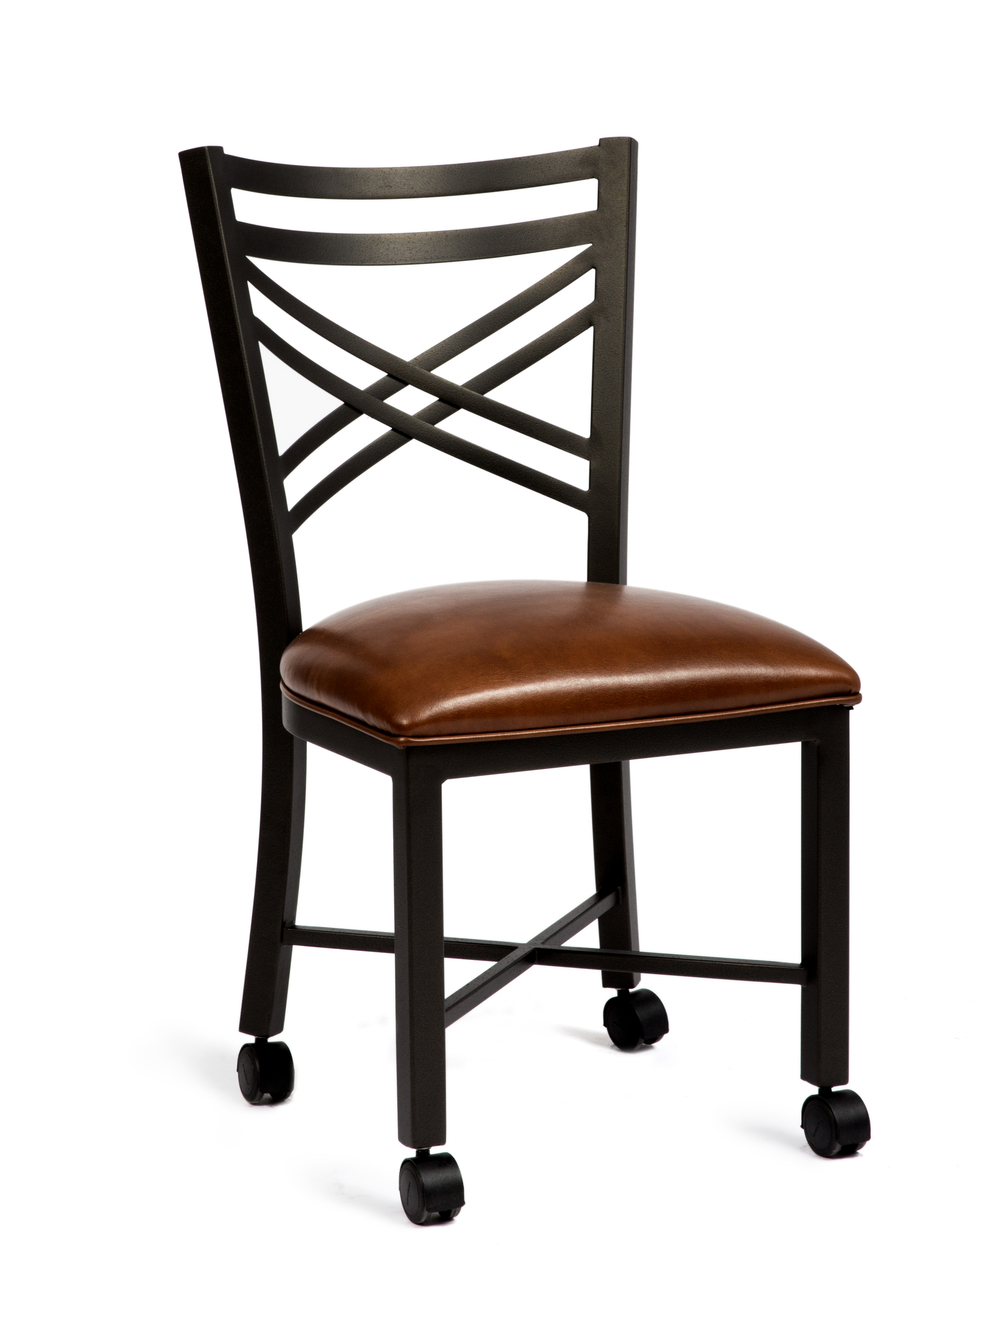 Wesley Allen - Chair with Casters